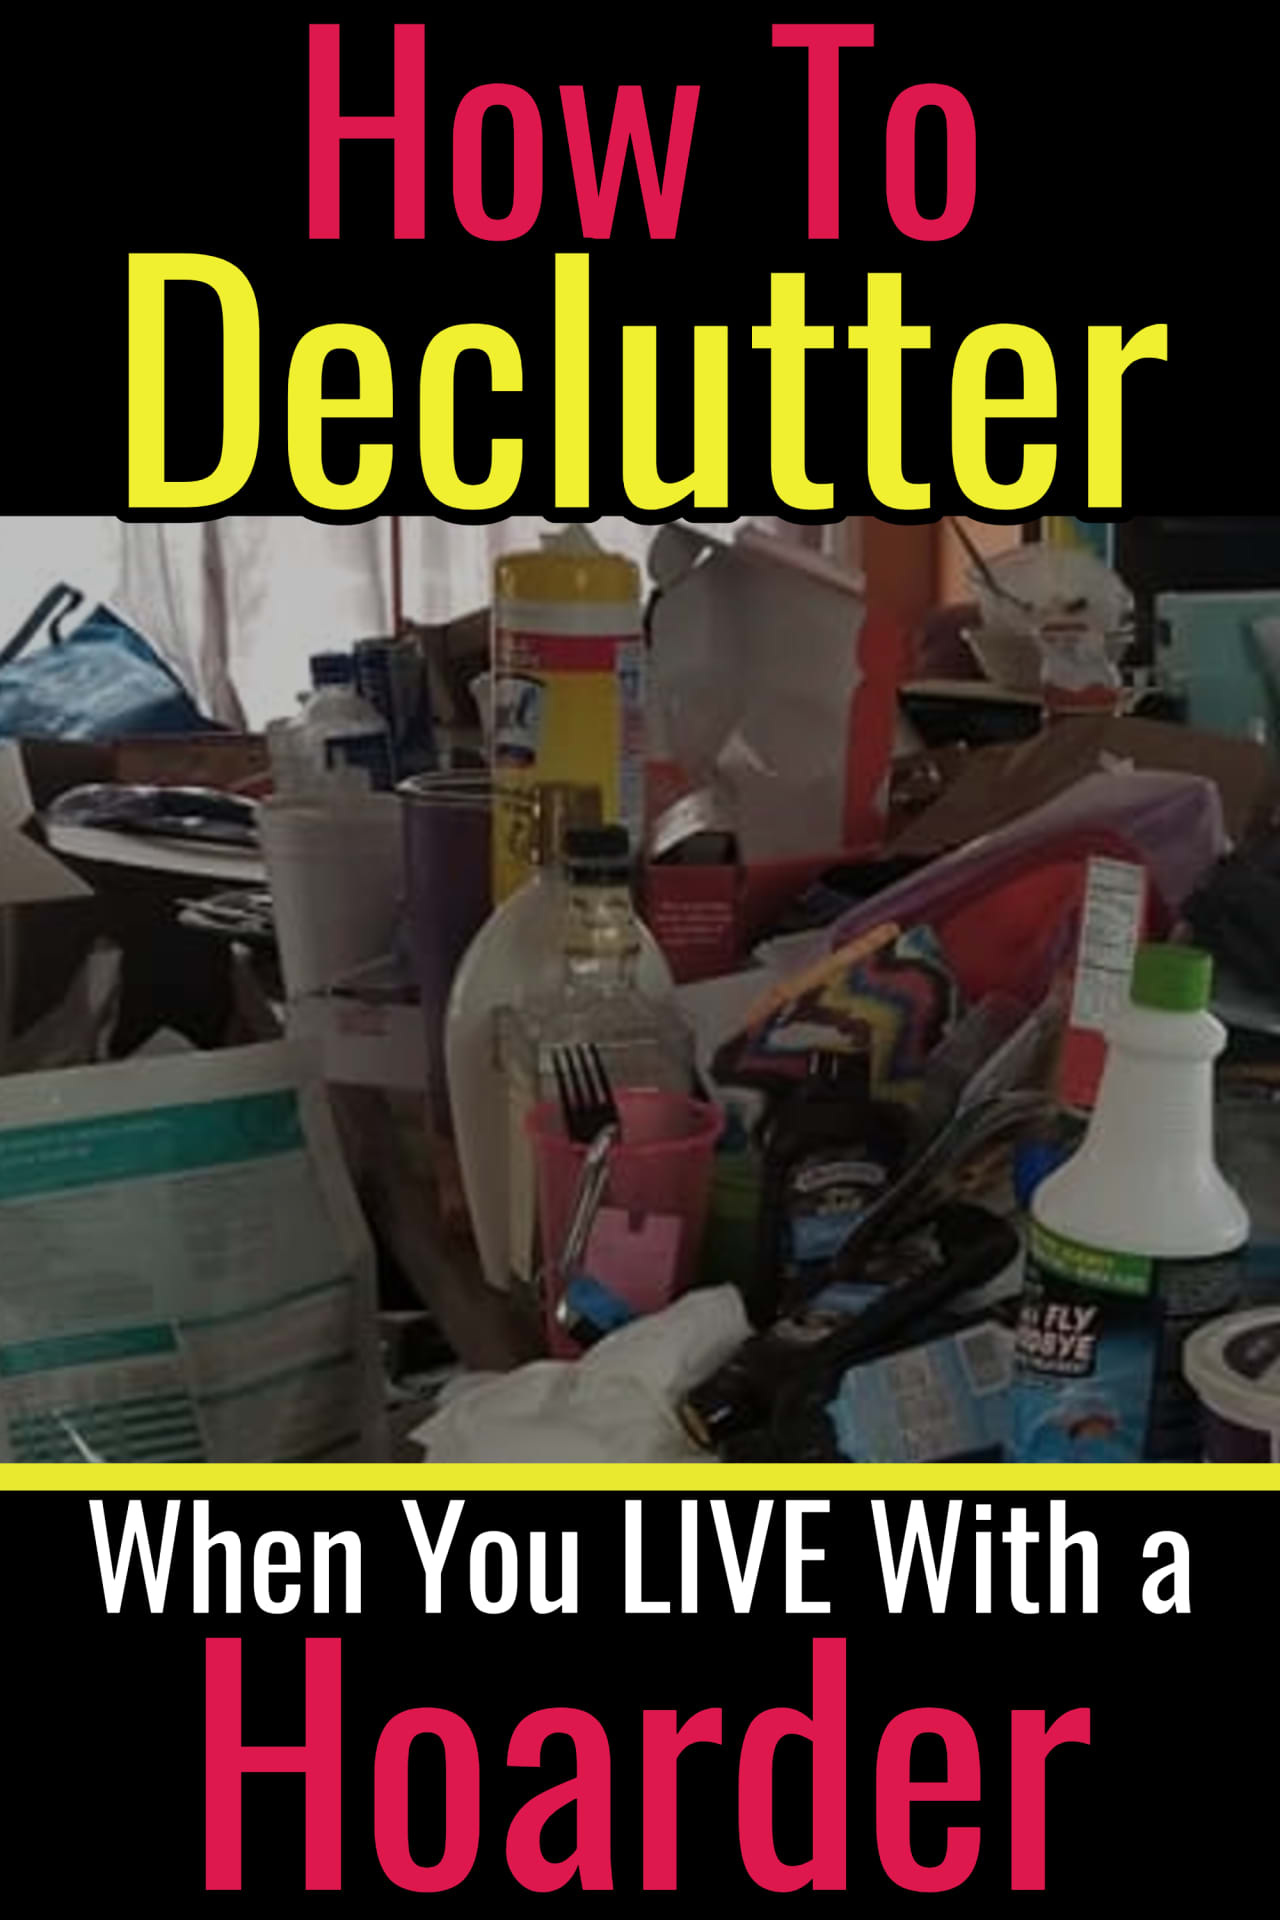 How To Declutter When You LIVE With a Hoarder -  Helping a hoarder declutter is SO much different than helping a pack rat get organized. Cleaning and organizing for hoarders is OVERWHELMING on many levels - these decluttering ideas help.  Here's our best tips to know how to help a hoarders declutter when you LIVE with the hoarder.